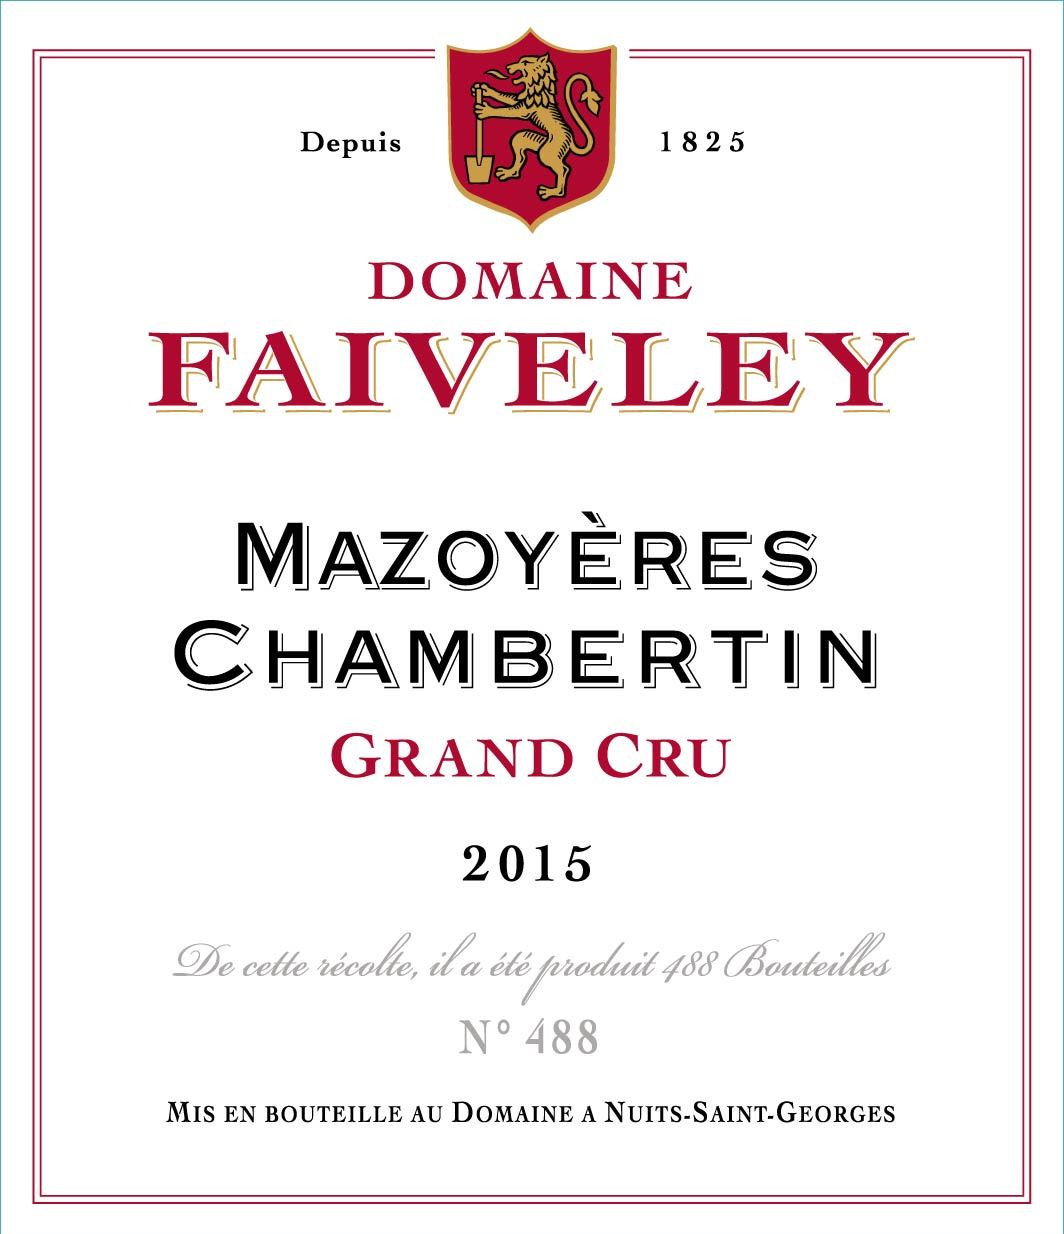 Faiveley : Que propose le domaine Faiveley ?